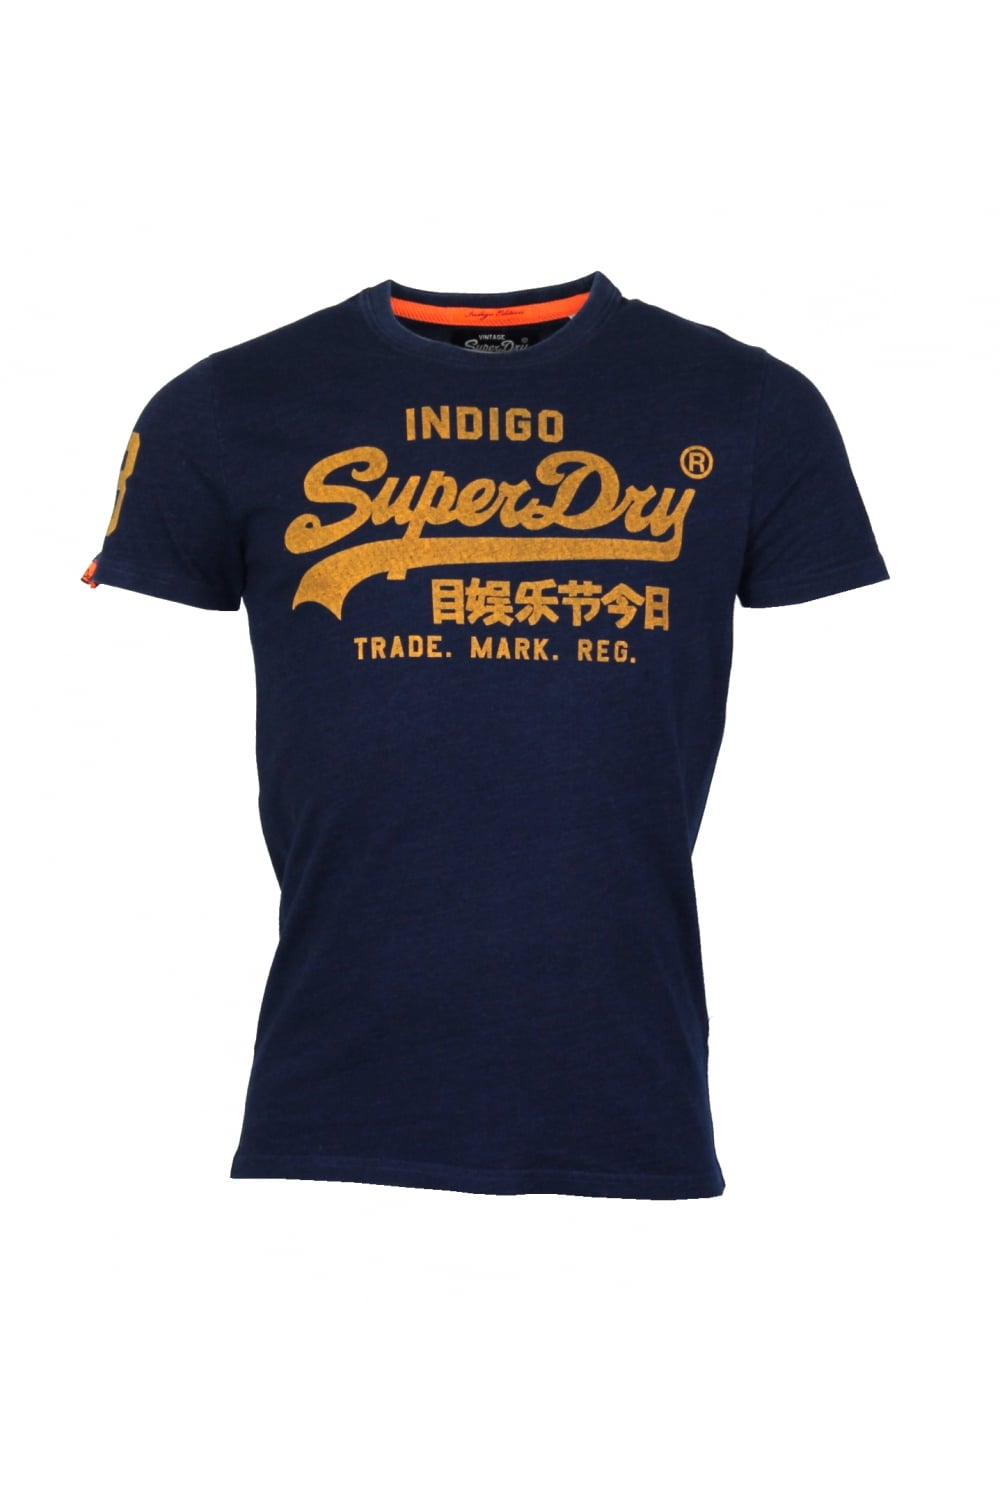 superdry vintage logo new indigo t shirt raw indigo gold. Black Bedroom Furniture Sets. Home Design Ideas